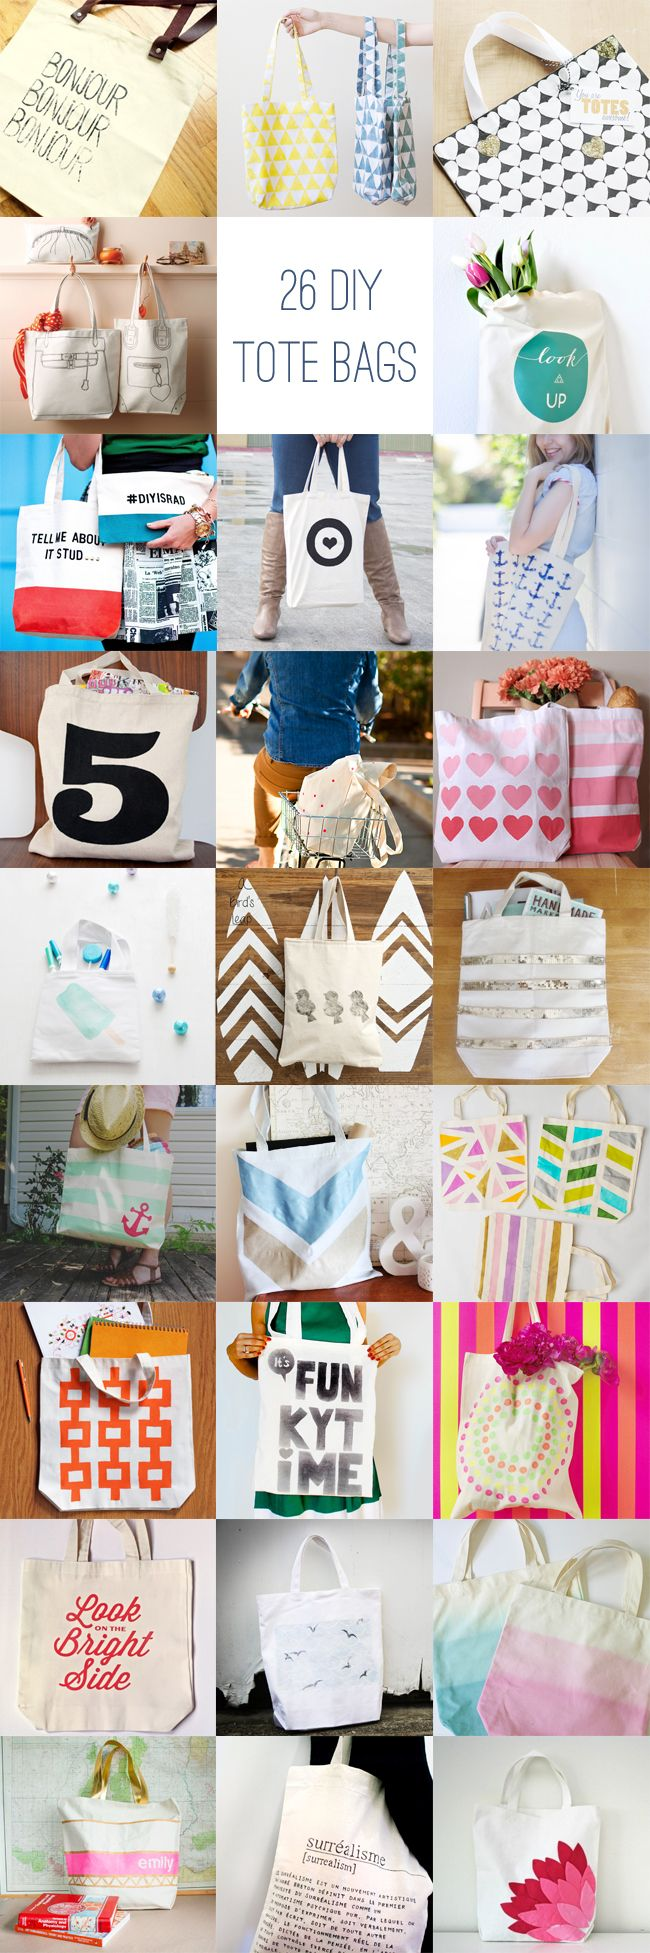 26 DIY Tote Bag Ideas [Henry Happened]